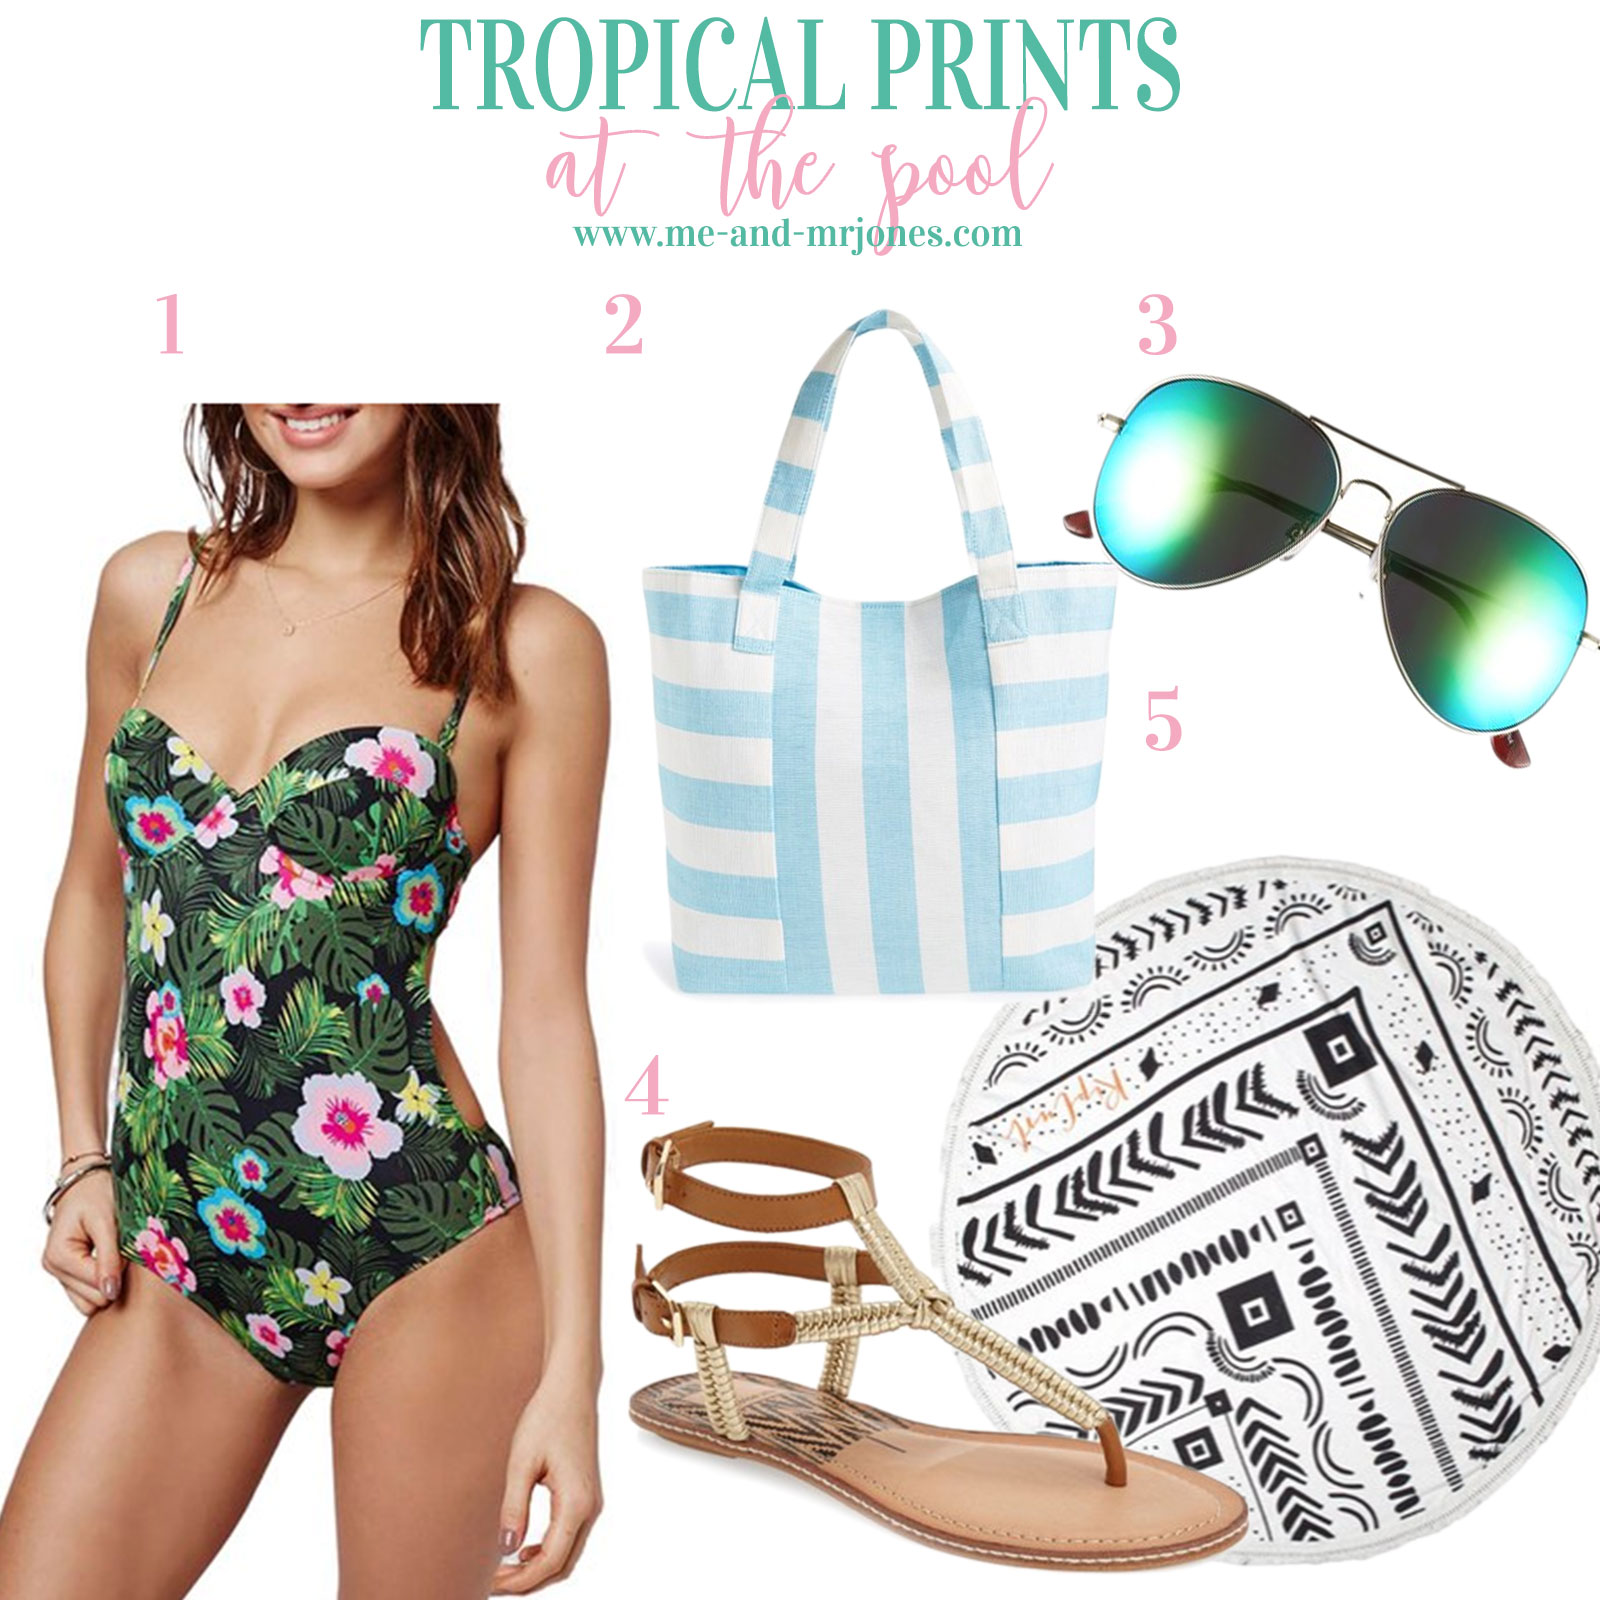 Tropical print one-piece bathing suit, cute summer outfits!